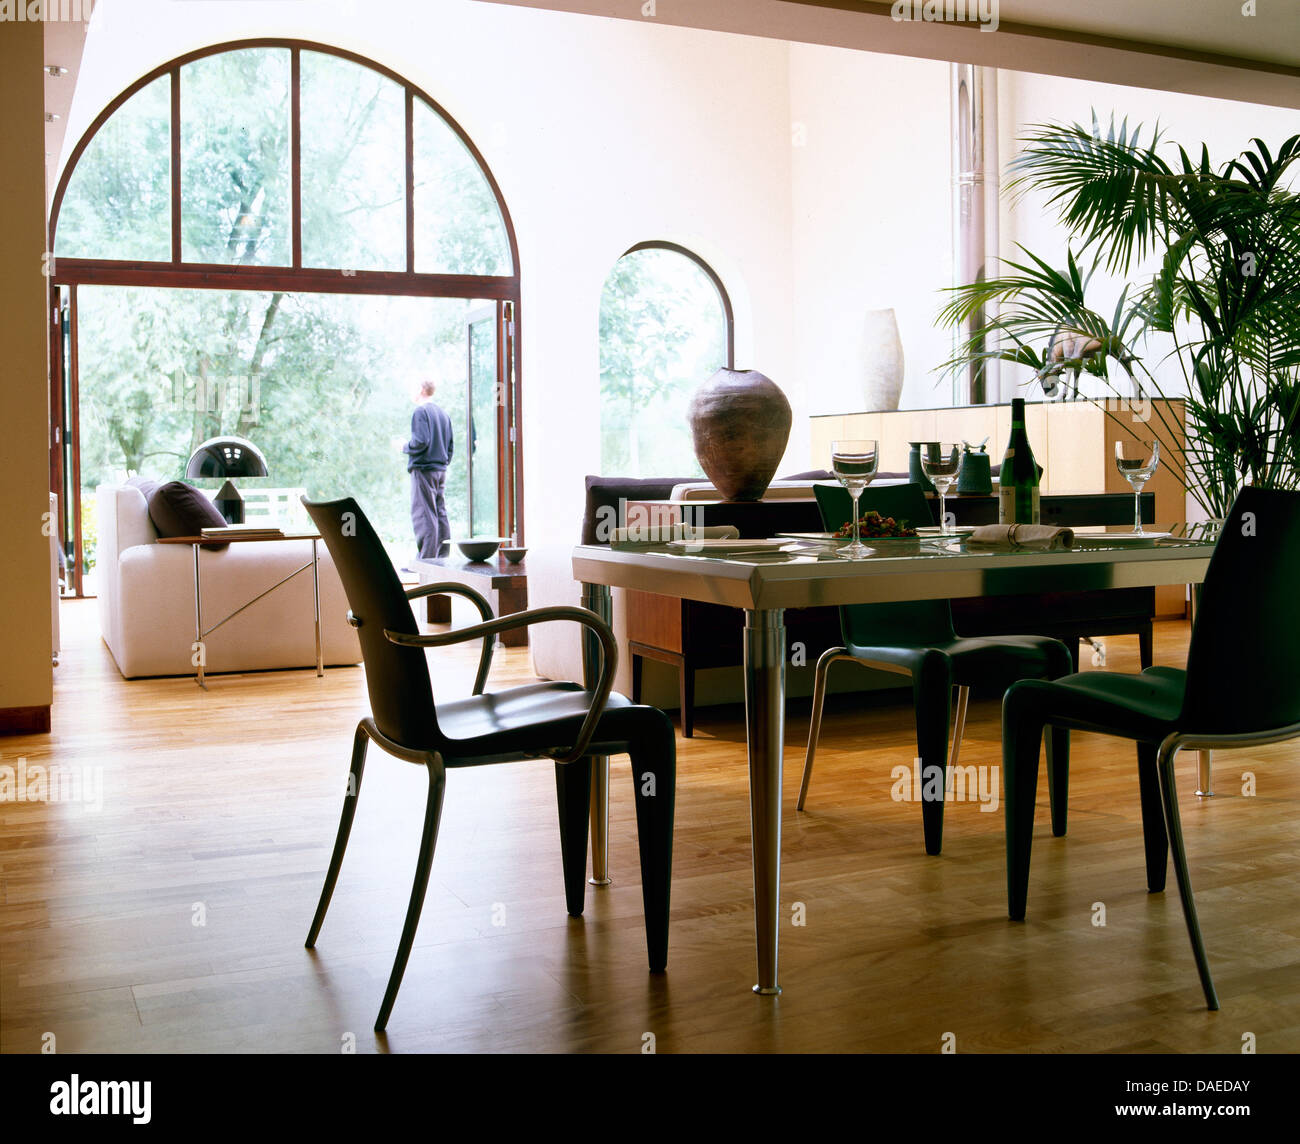 kitchen dining room open plan monochromatic stockfotos kitchen dining room open plan. Black Bedroom Furniture Sets. Home Design Ideas